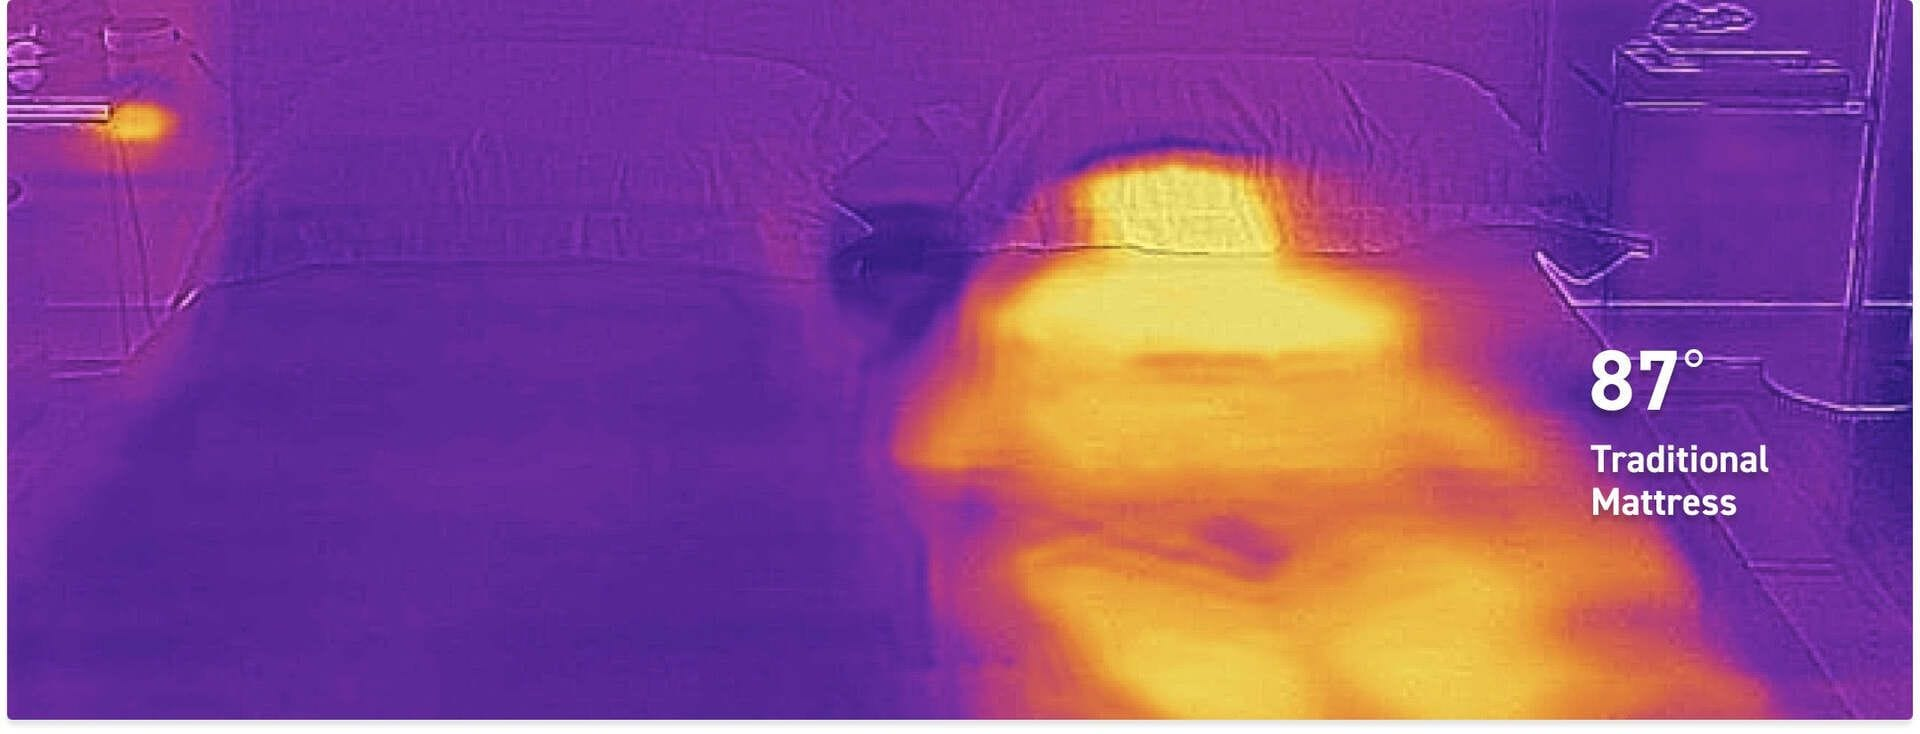 thermal image showing body heat imprint on traditional mattress